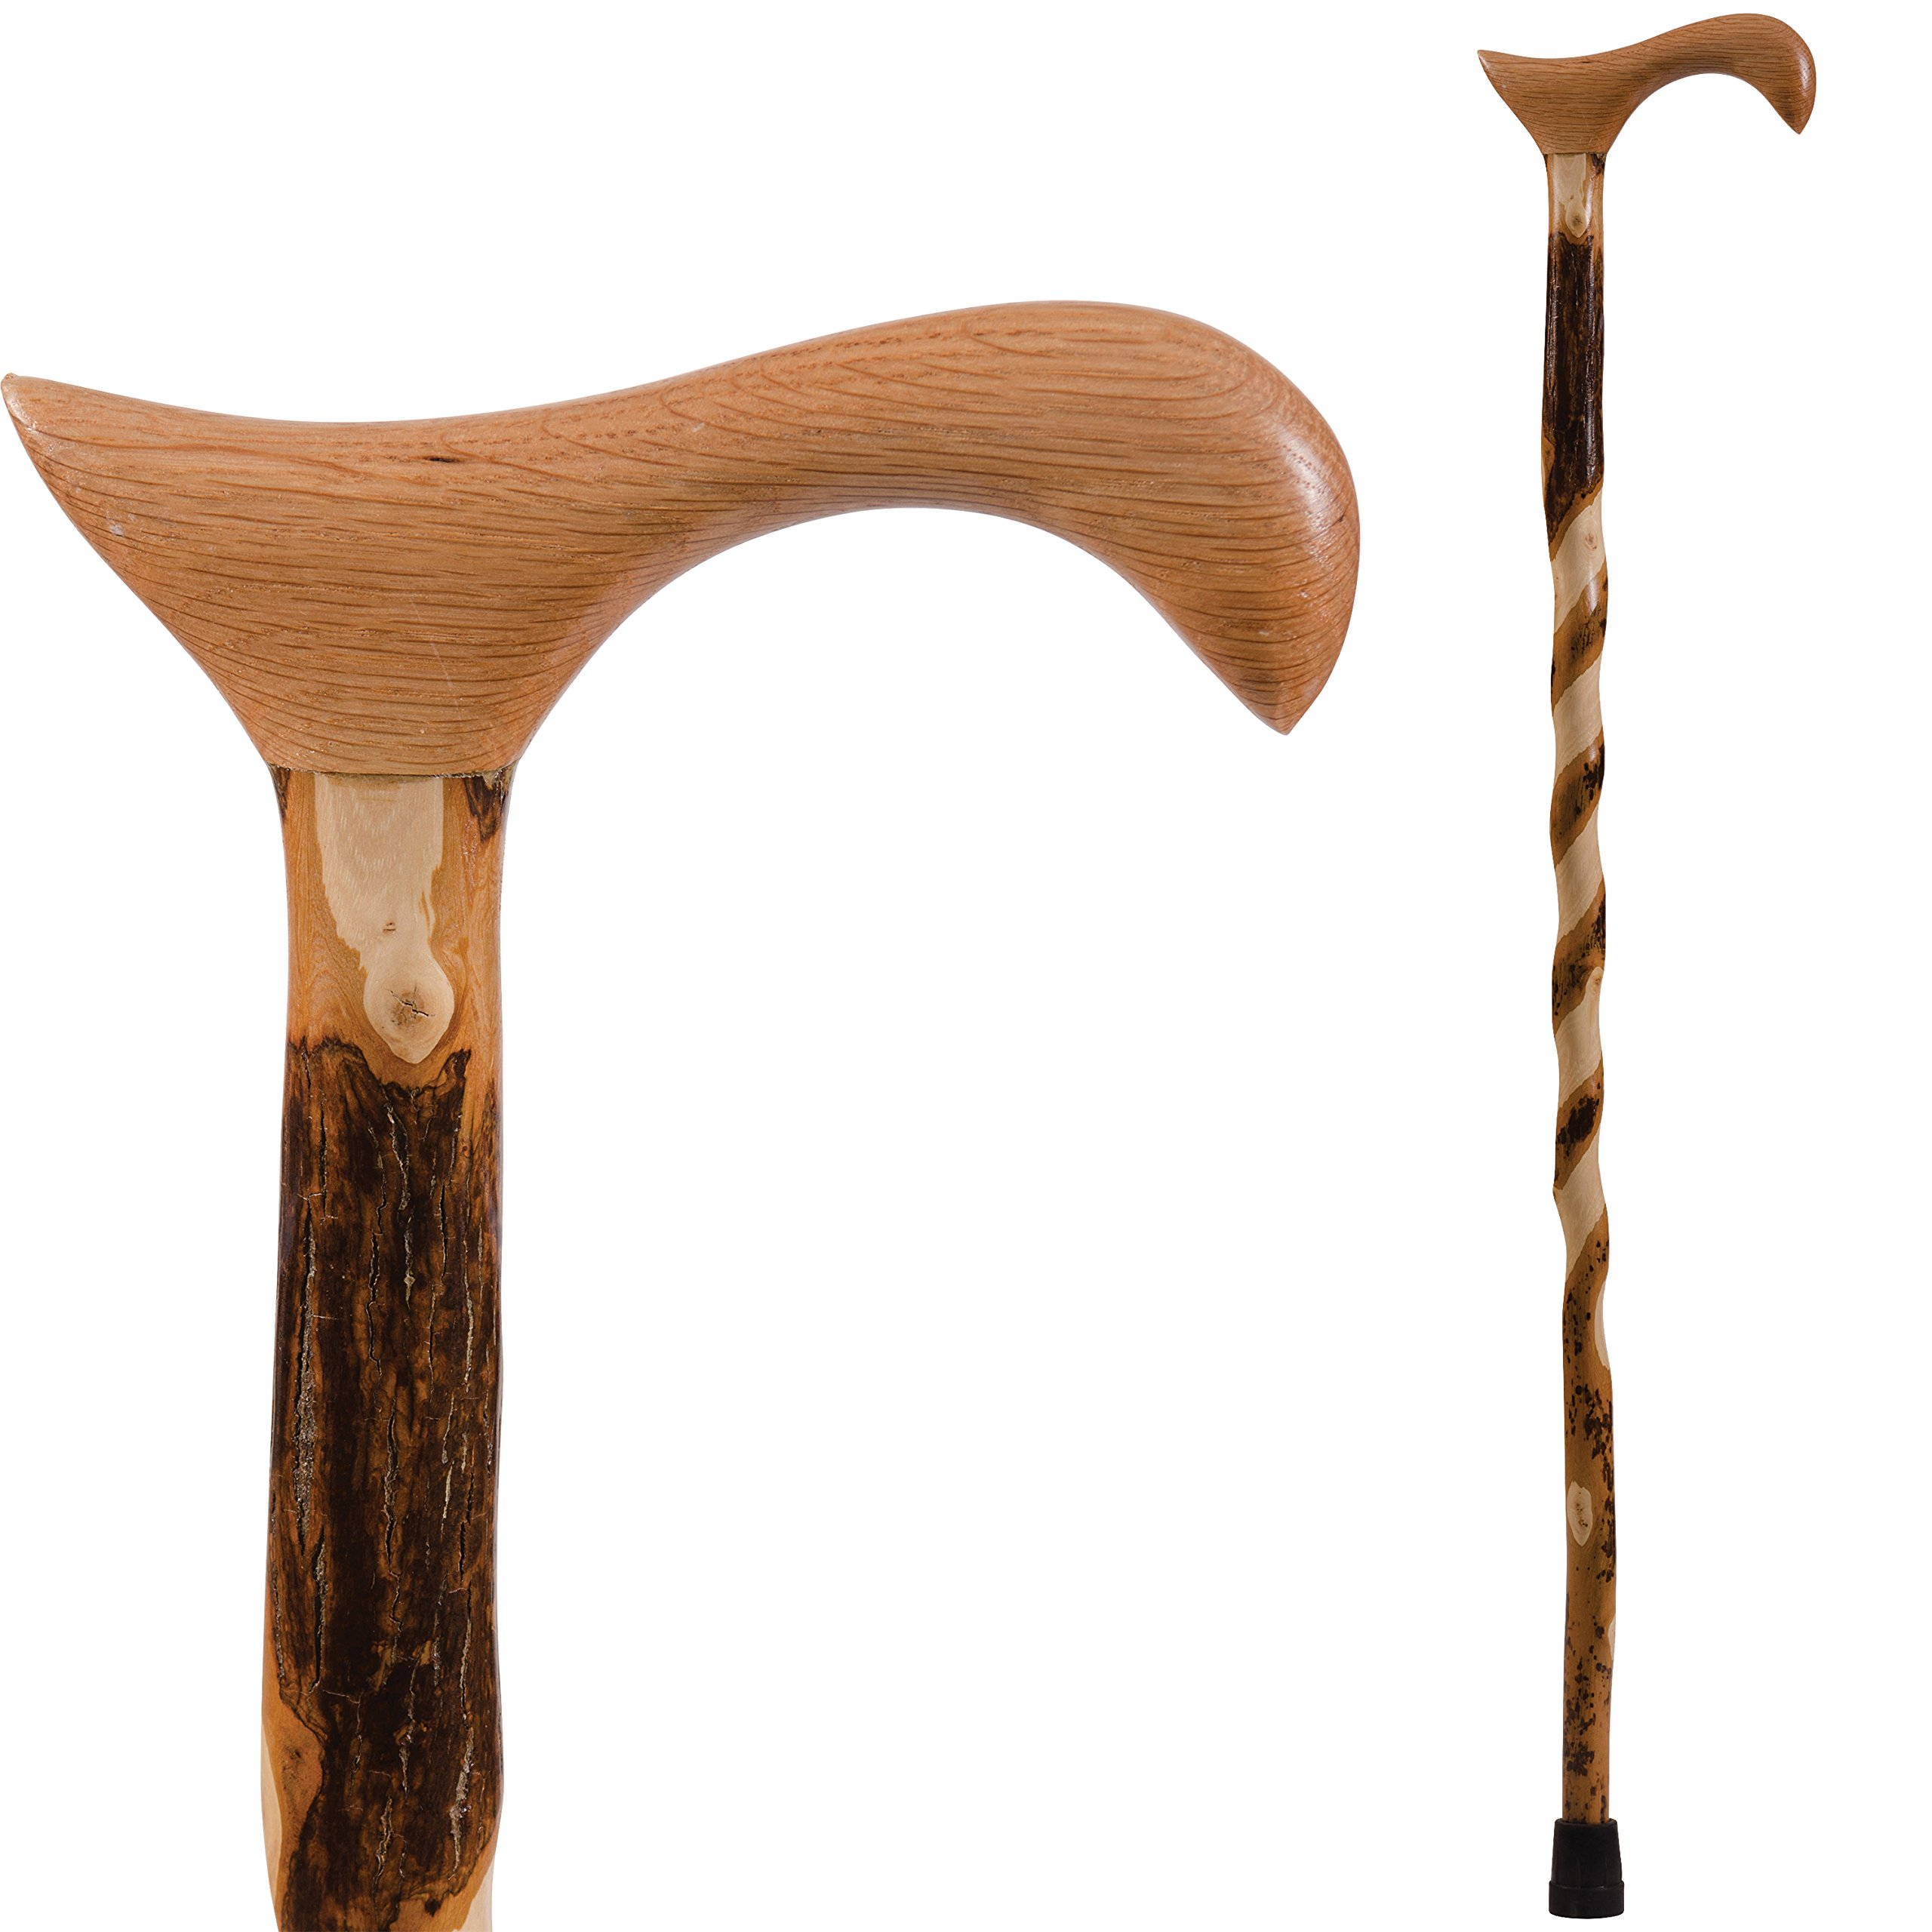 Brazos Free Form Twisted Hickory Handcrafted Wood Cane with Derby Handle, 40 Inch, Made in the USA